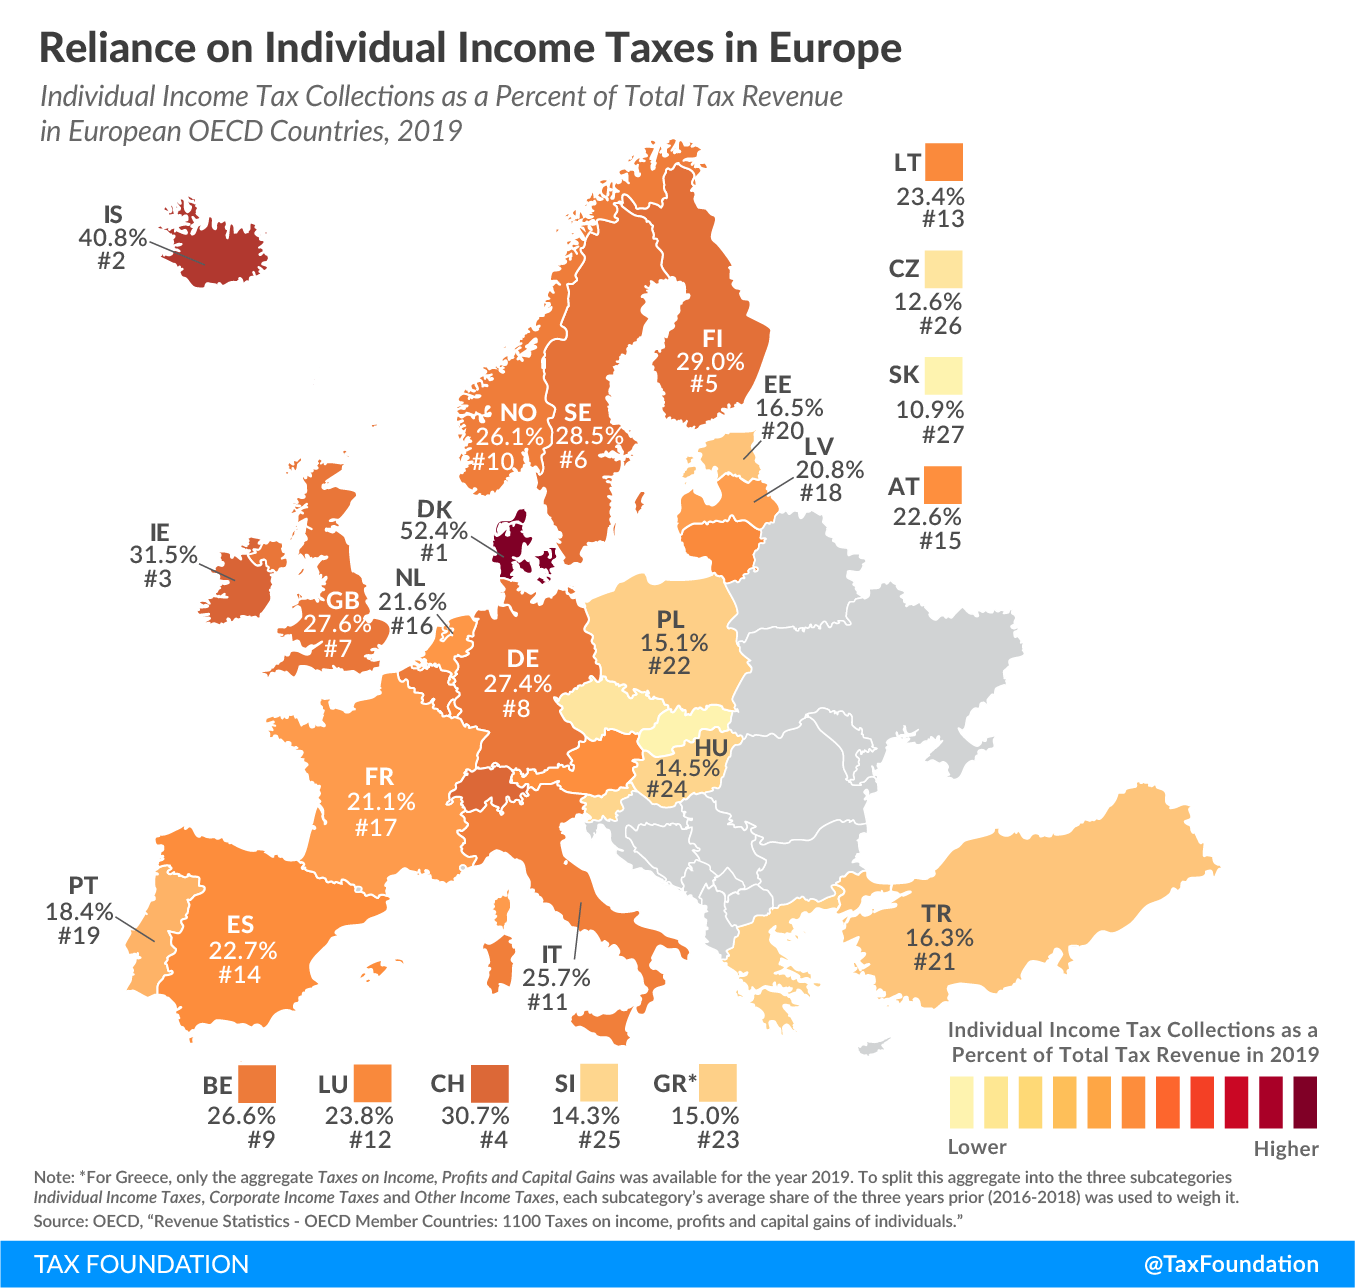 Reliance on individual income tax revenue in Europe 2019